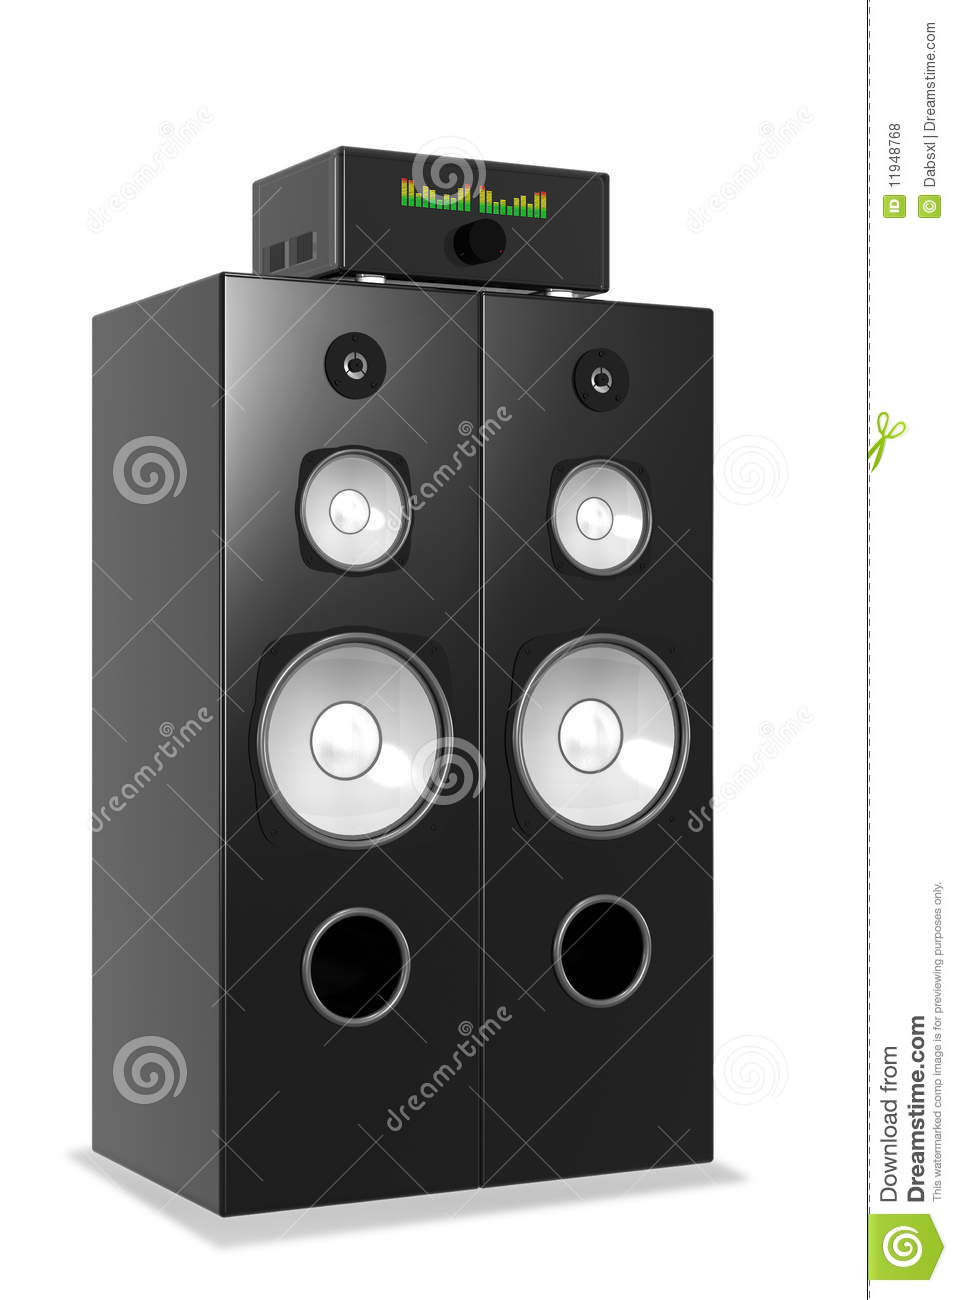 loud music from big audio system stock illustration